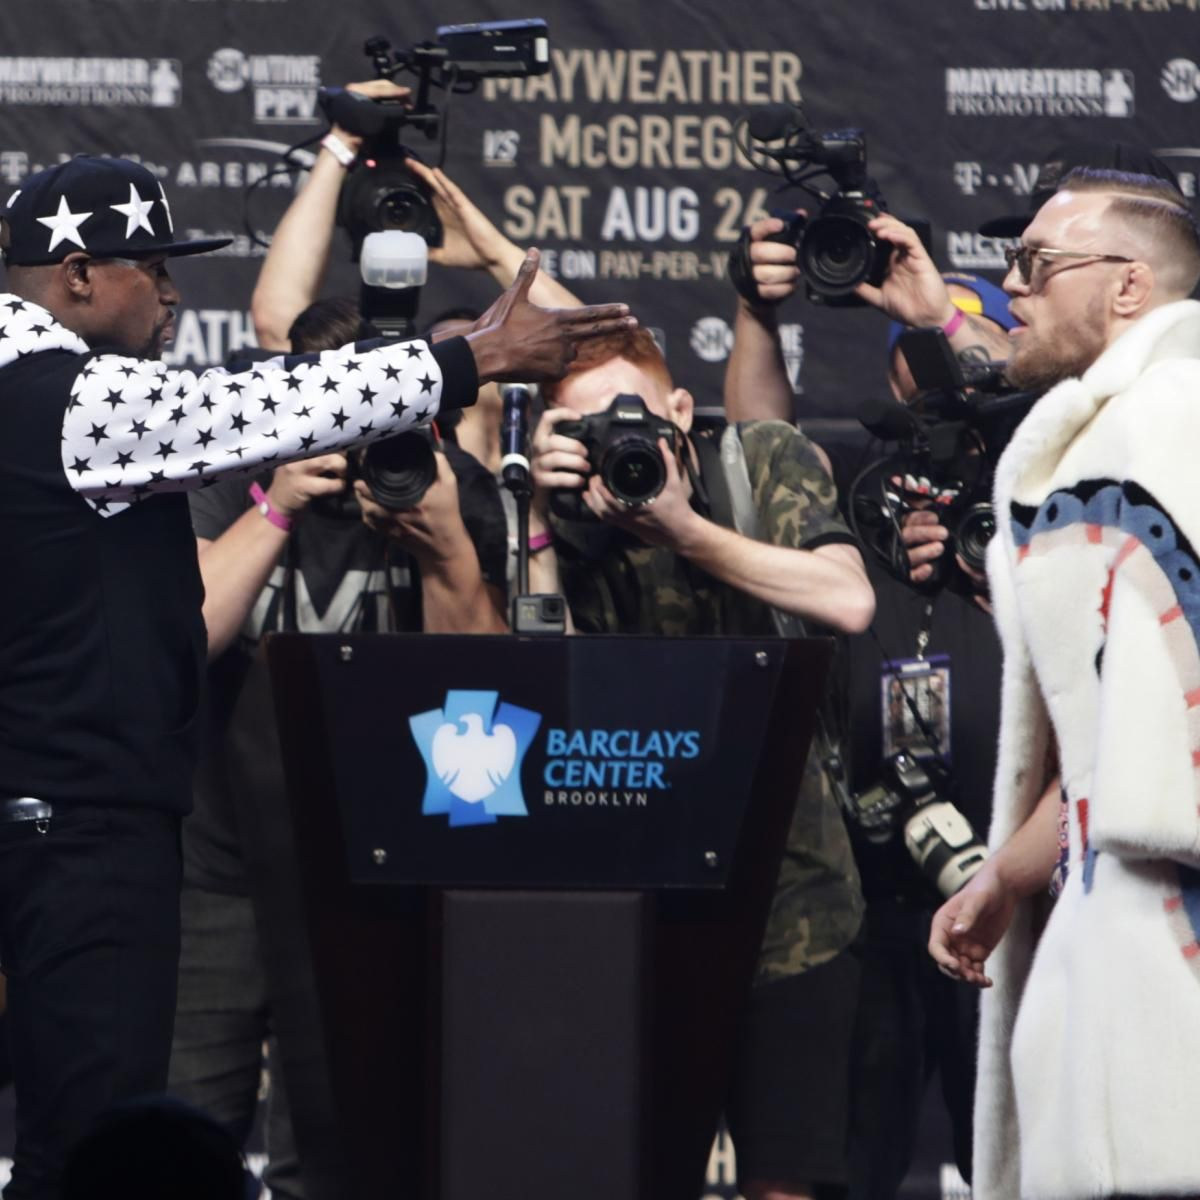 Floyd Mayweather, Conor McGregor Smack Talk at Presser; Notorious Denies Racism - Bleacher Report